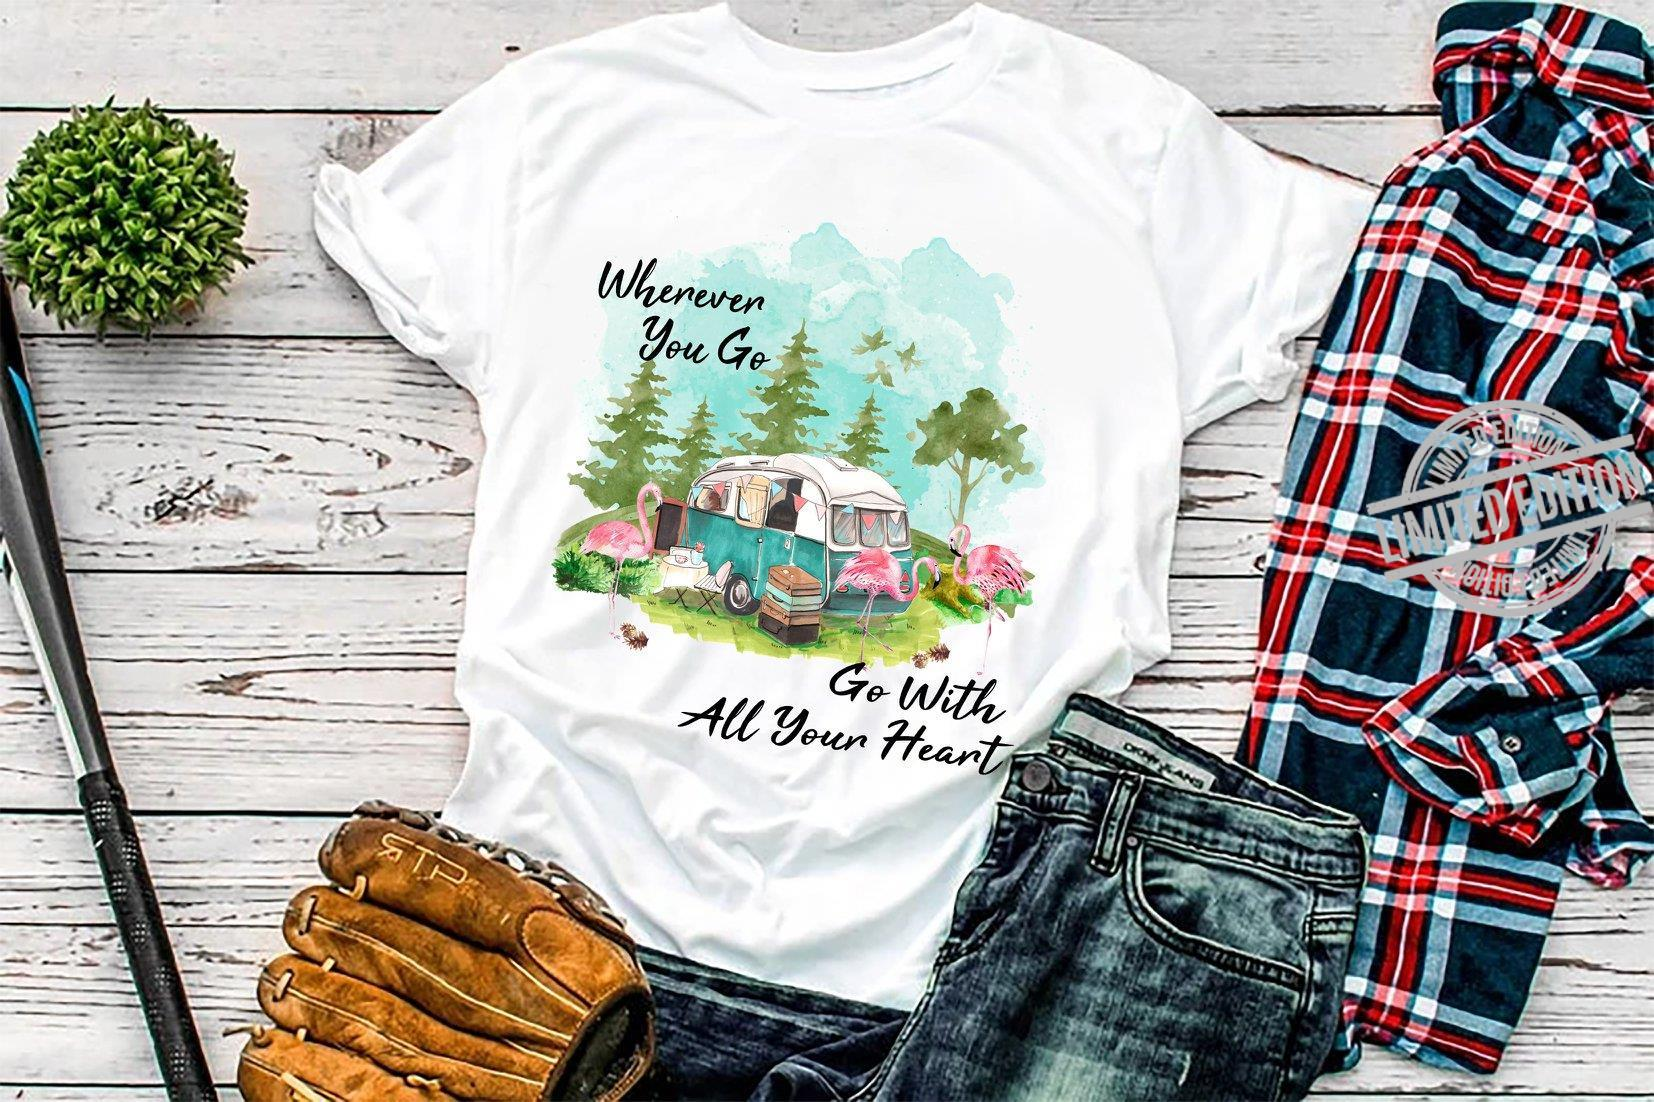 Wherever You Go Go With All Your Heart Shirt